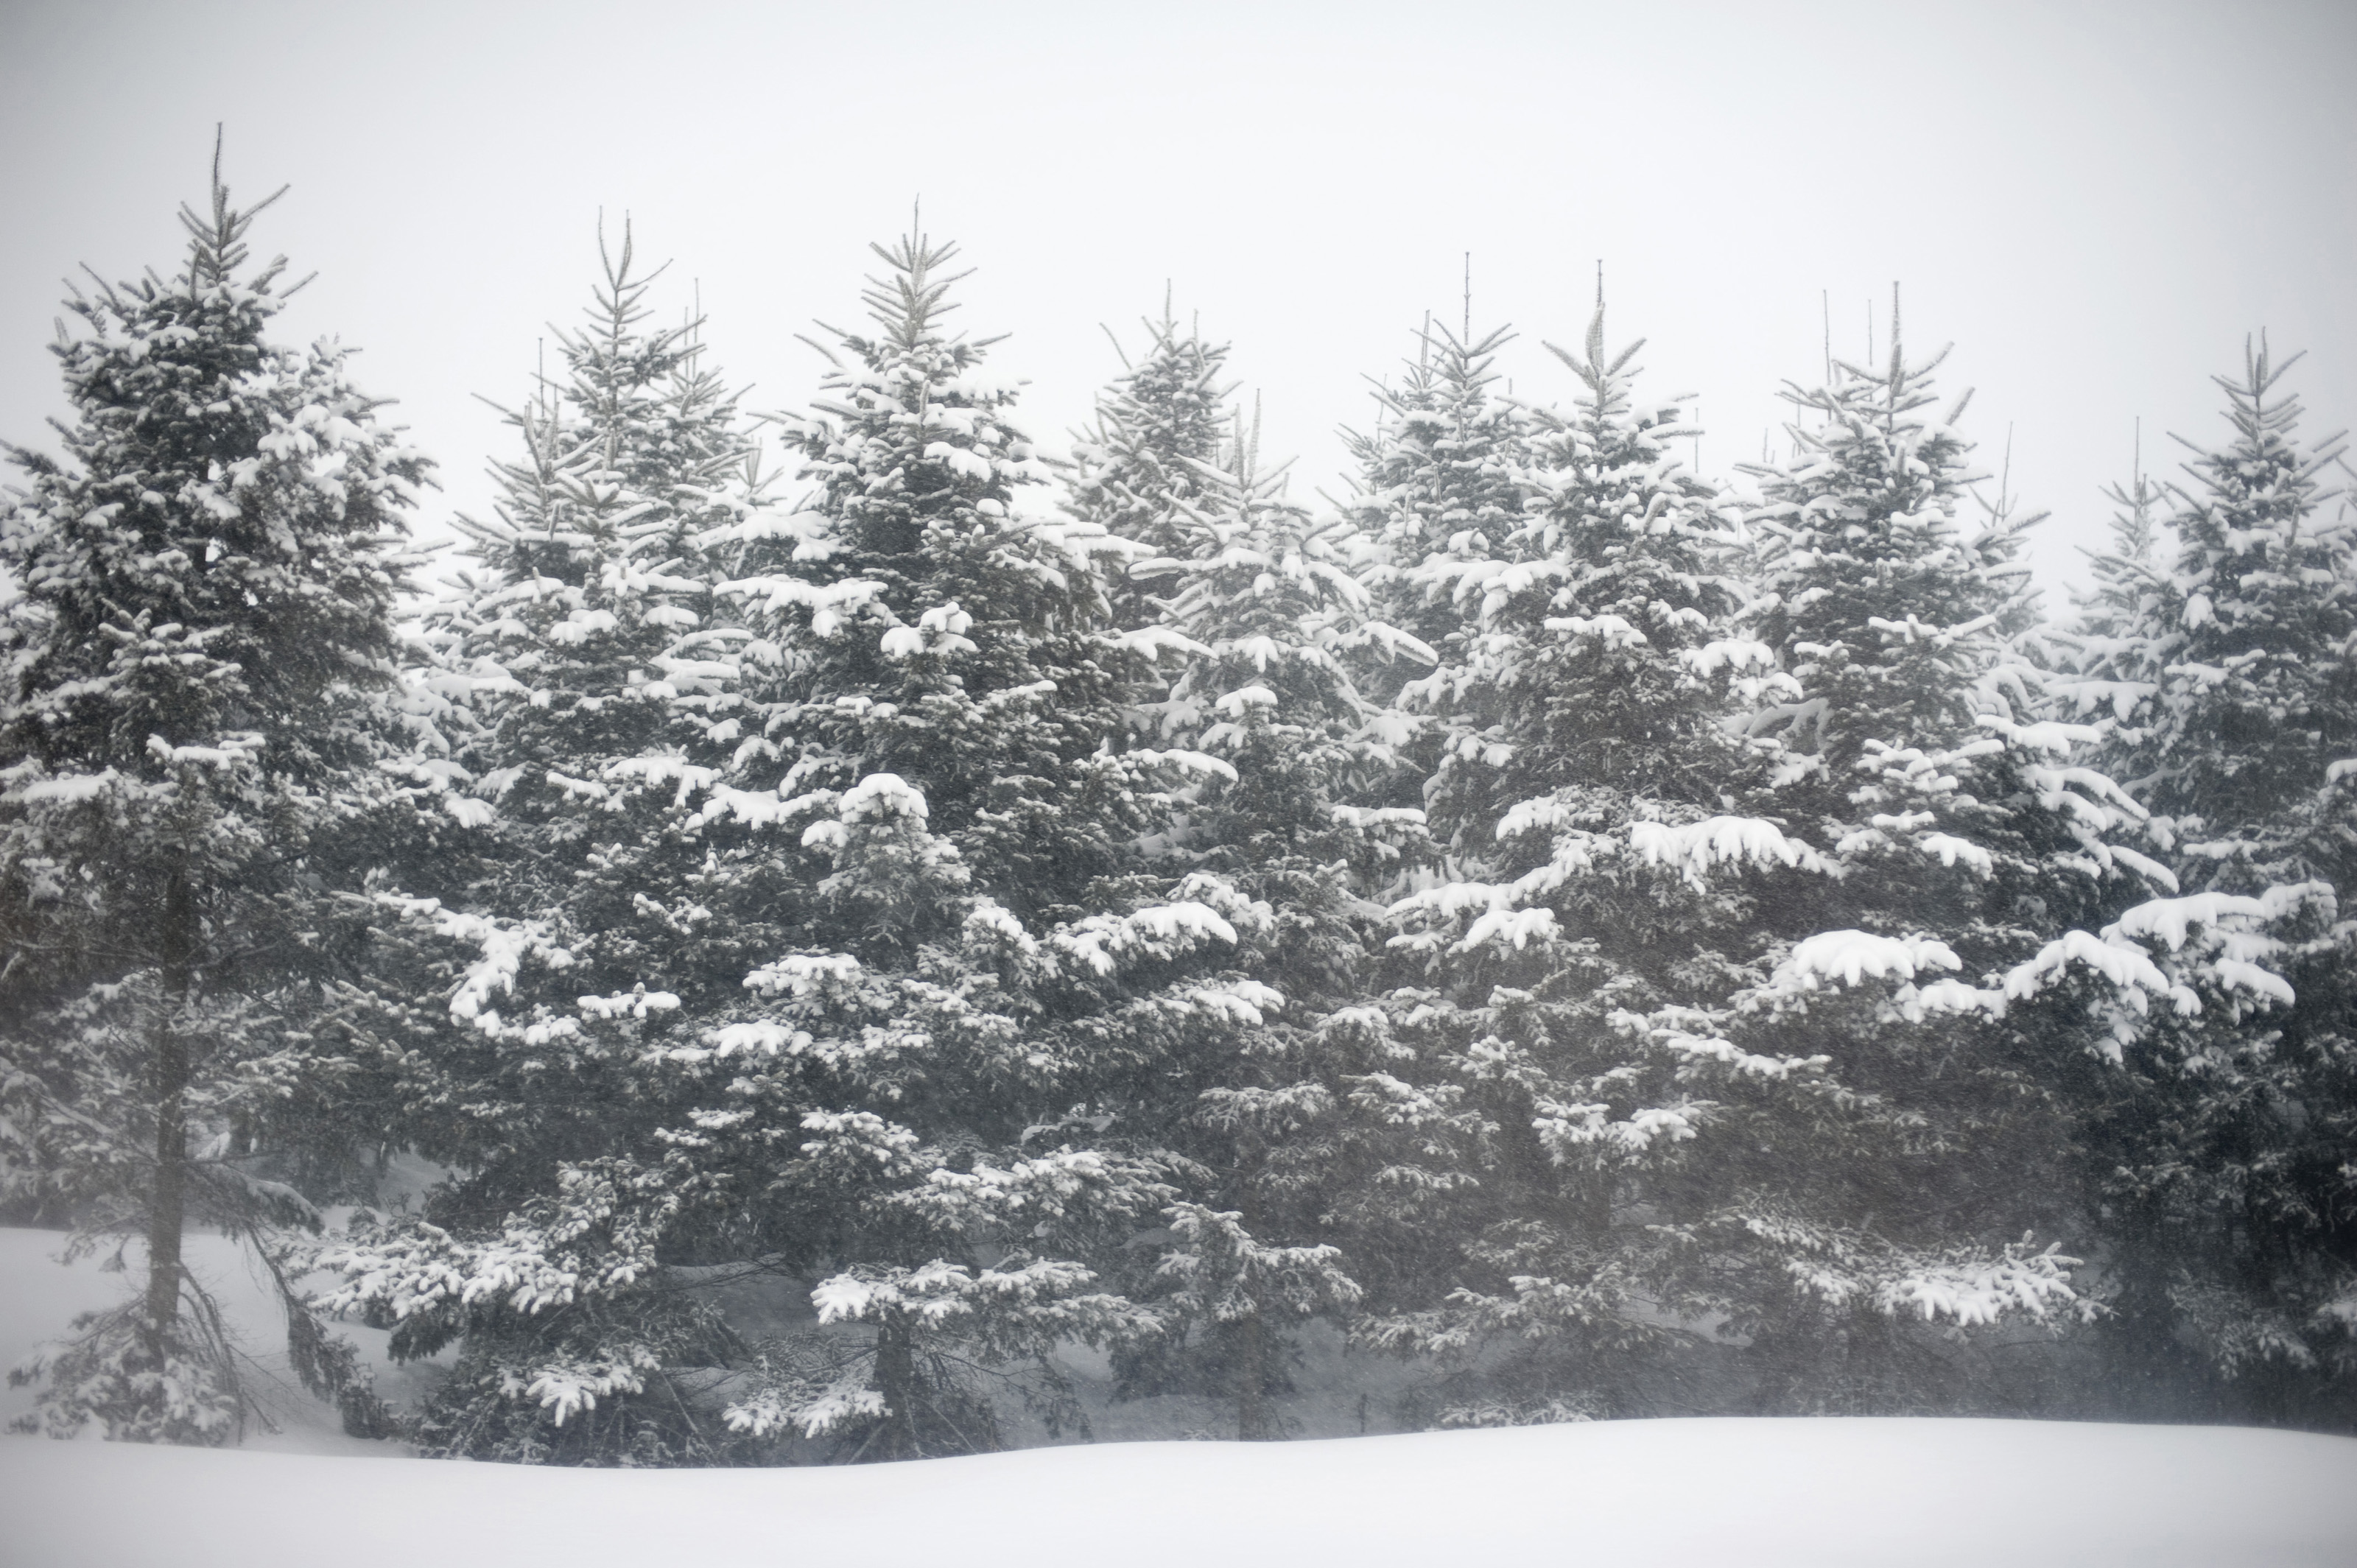 Live Winter Snow Fall Background Wallpaper Free Stock Photo 5972 Winter Wonderland Freeimageslive